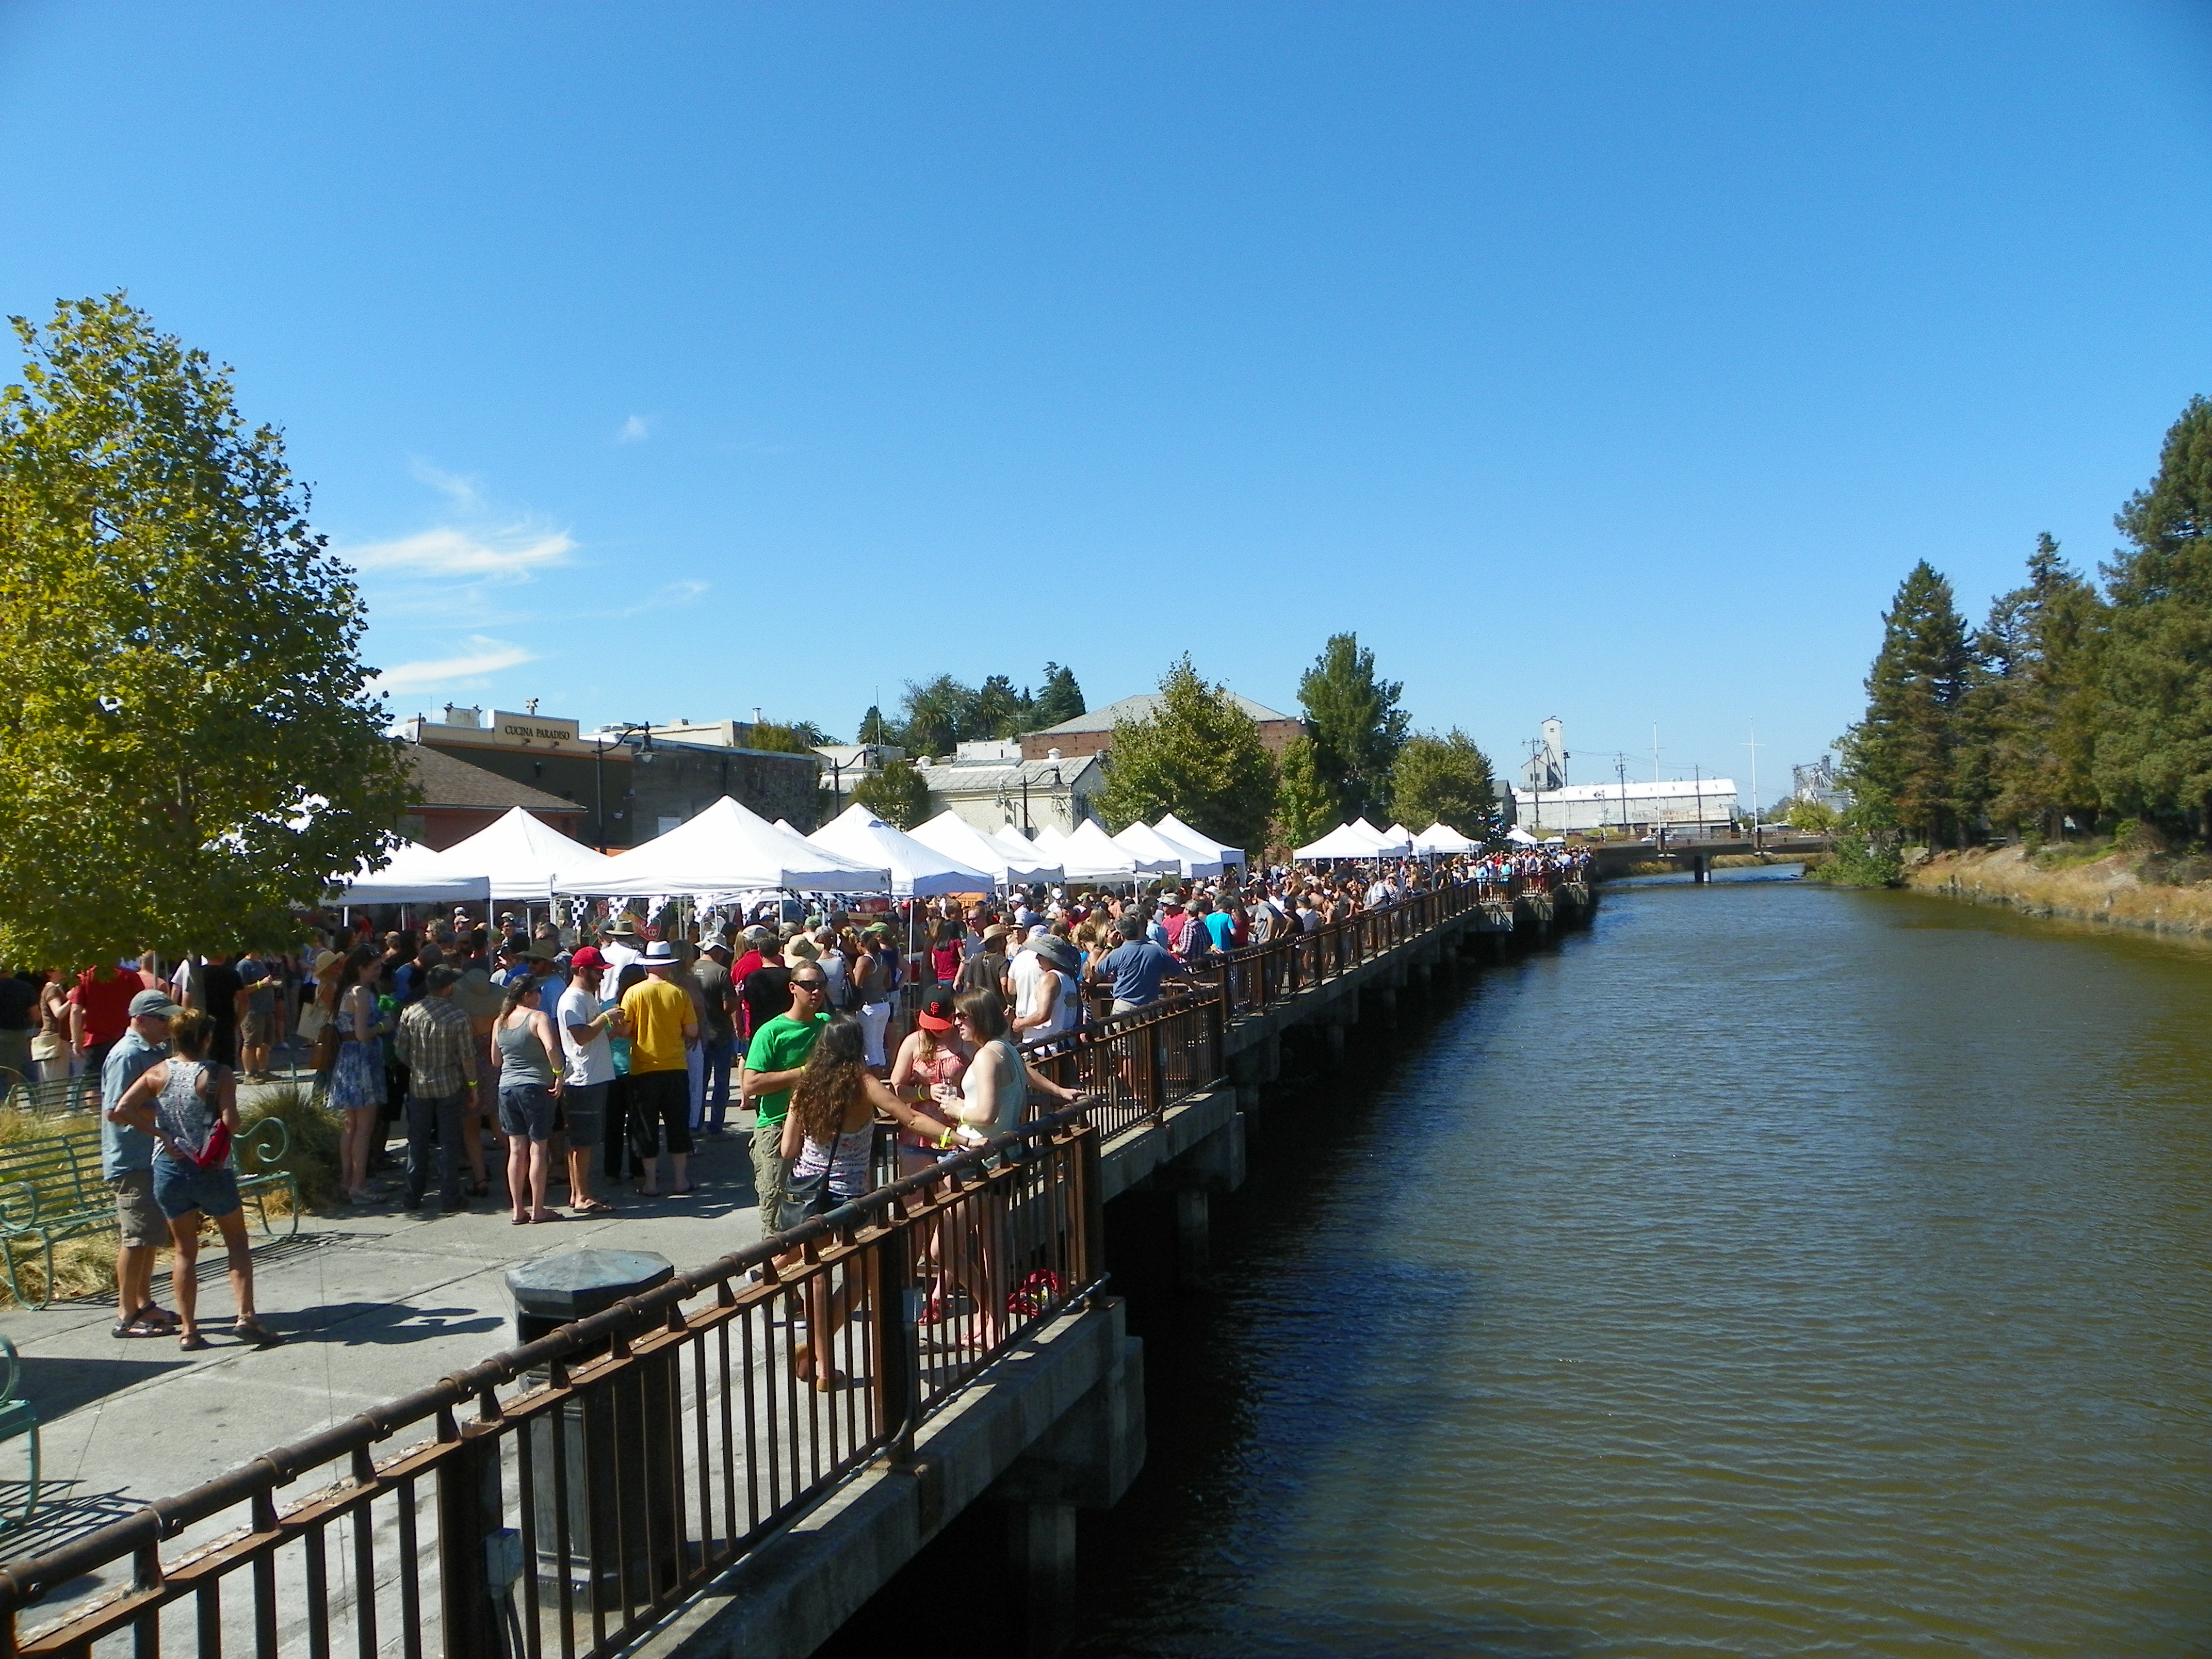 Cucina Paradiso Wine List 2nd Annual Petaluma Craft Beer Festival Sonoma County Wine Blog